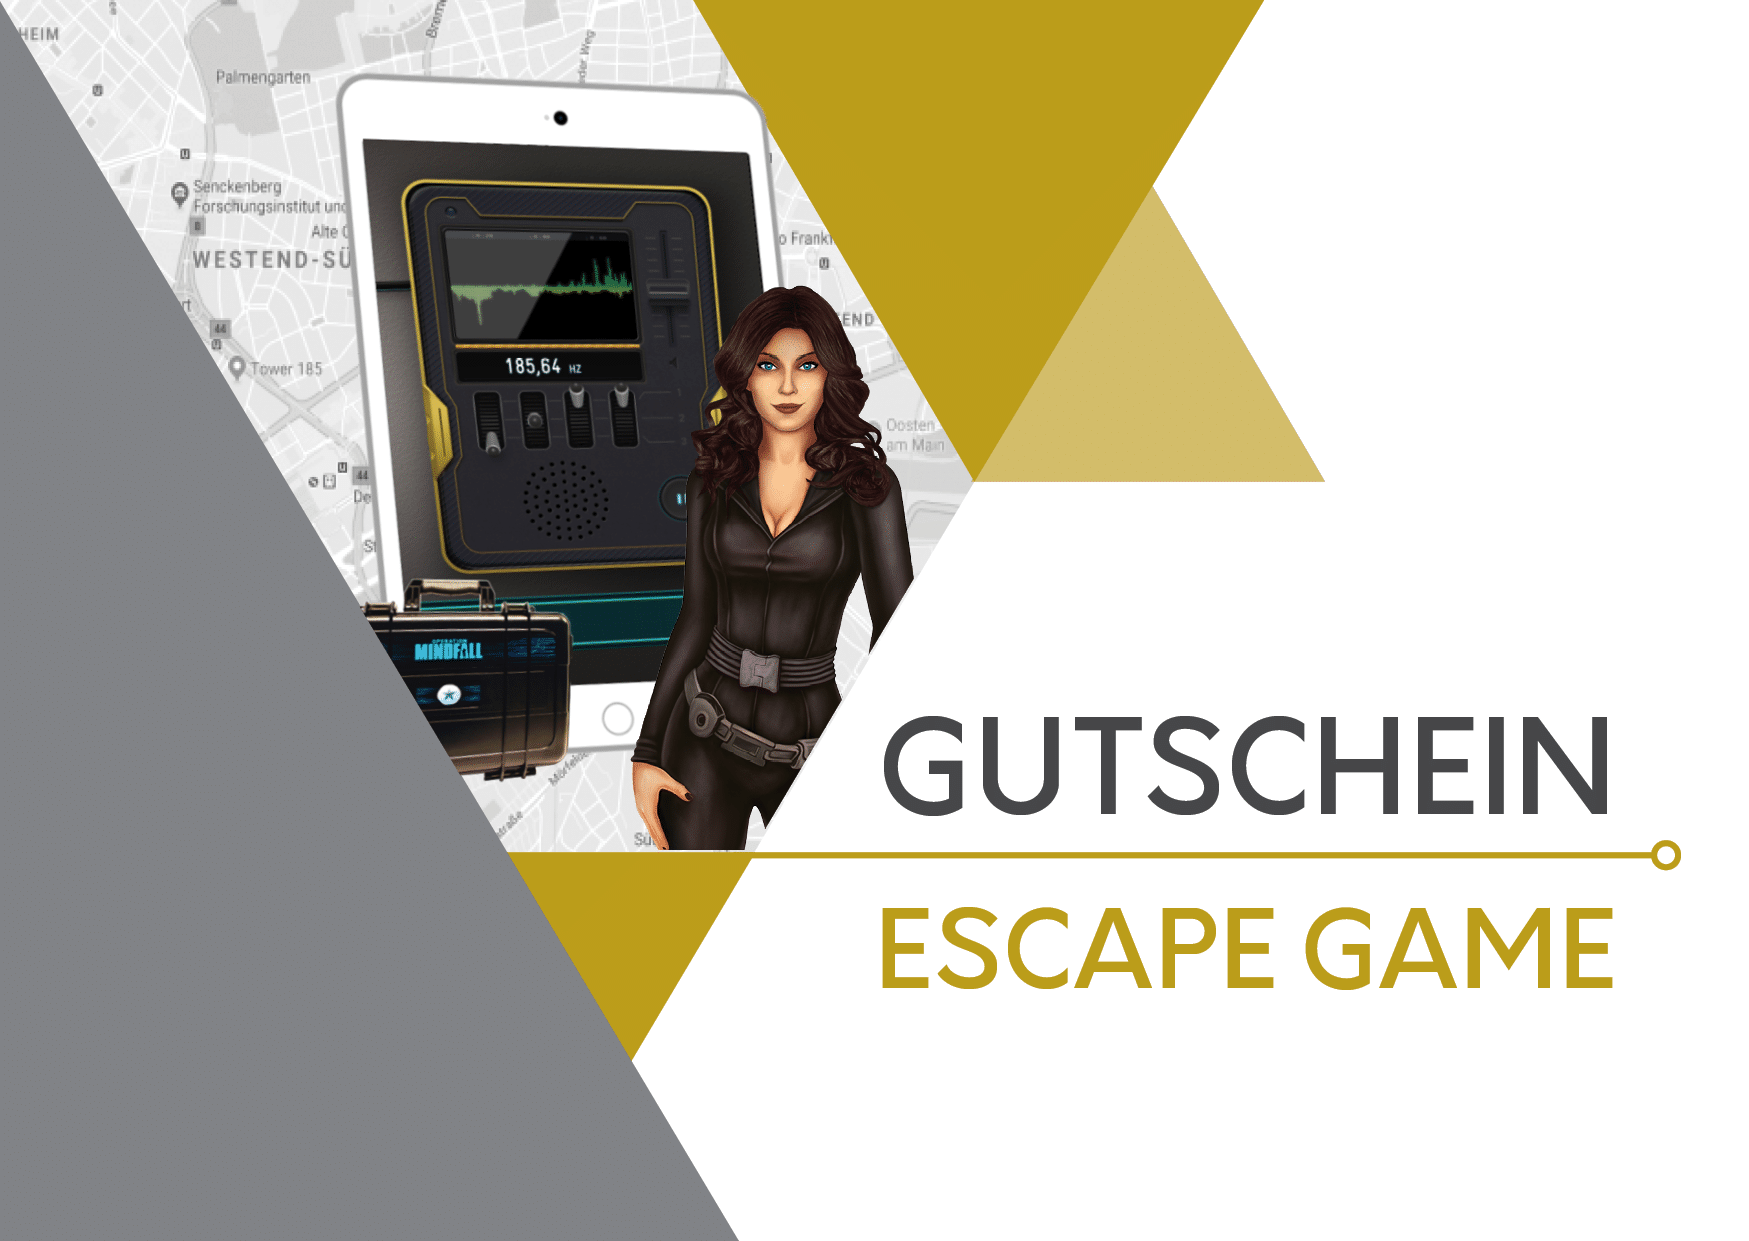 Gutschein Escape Game Outdoor FrankfurtGutschein Escape Game Outdoor Frankfurt